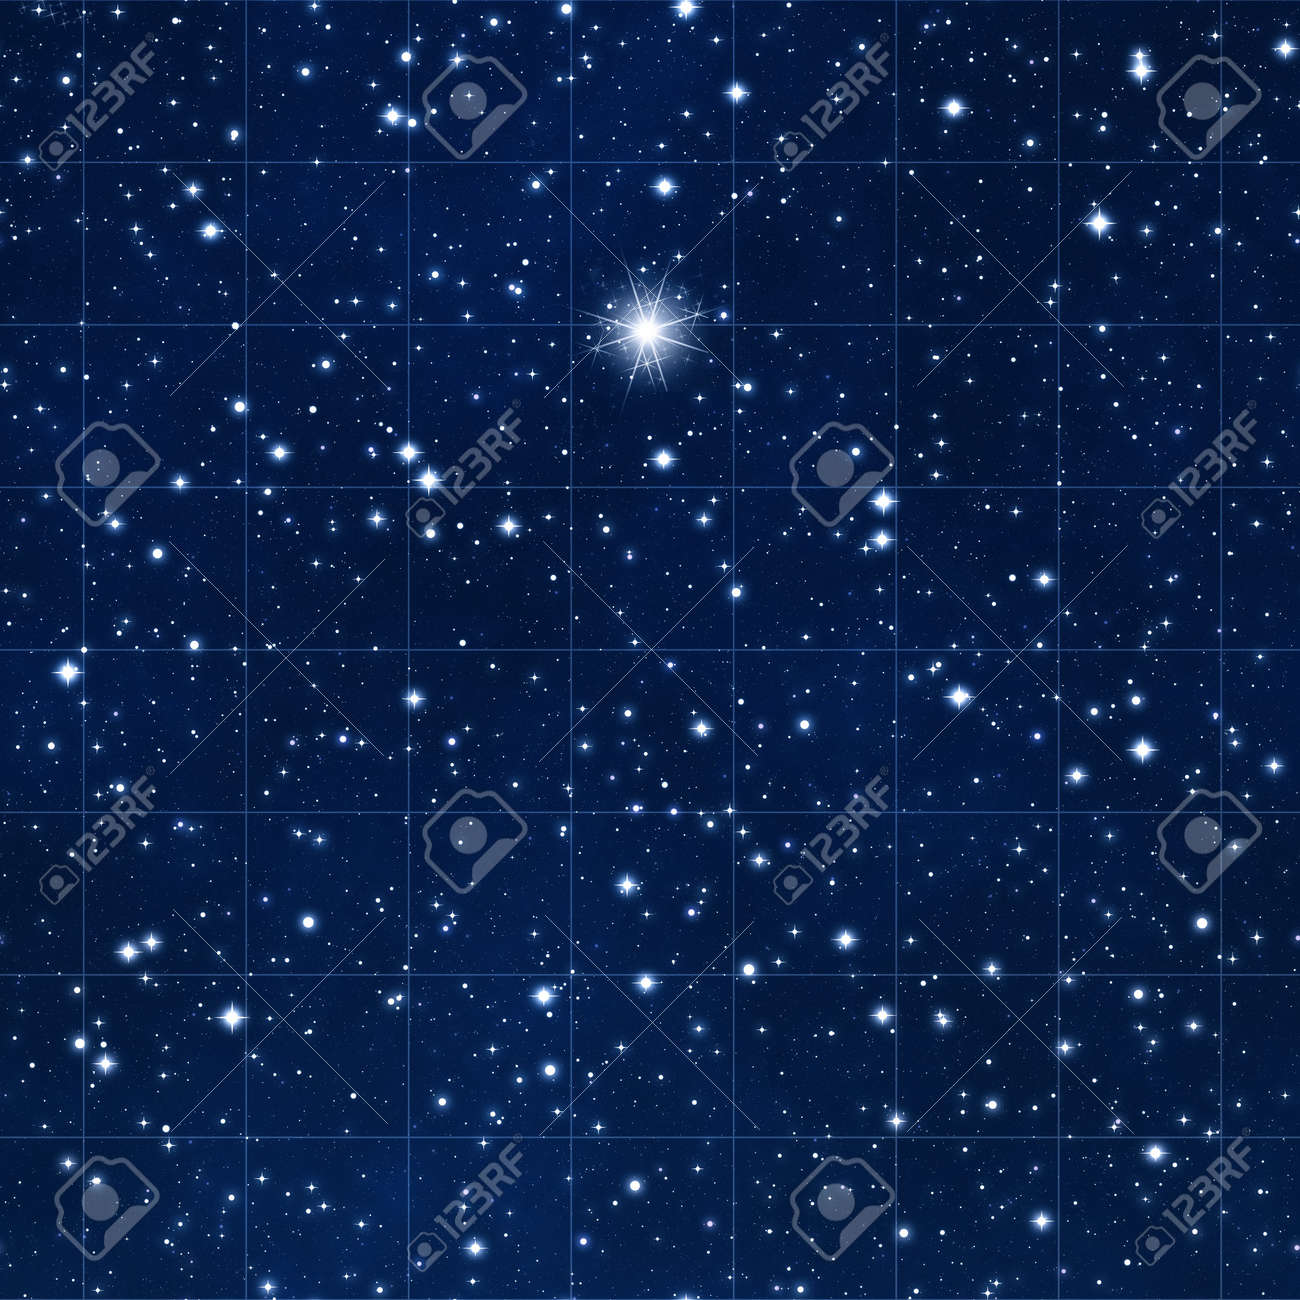 reach for the stars with space gridded starmap and bright destination star Stock Photo - 7384622